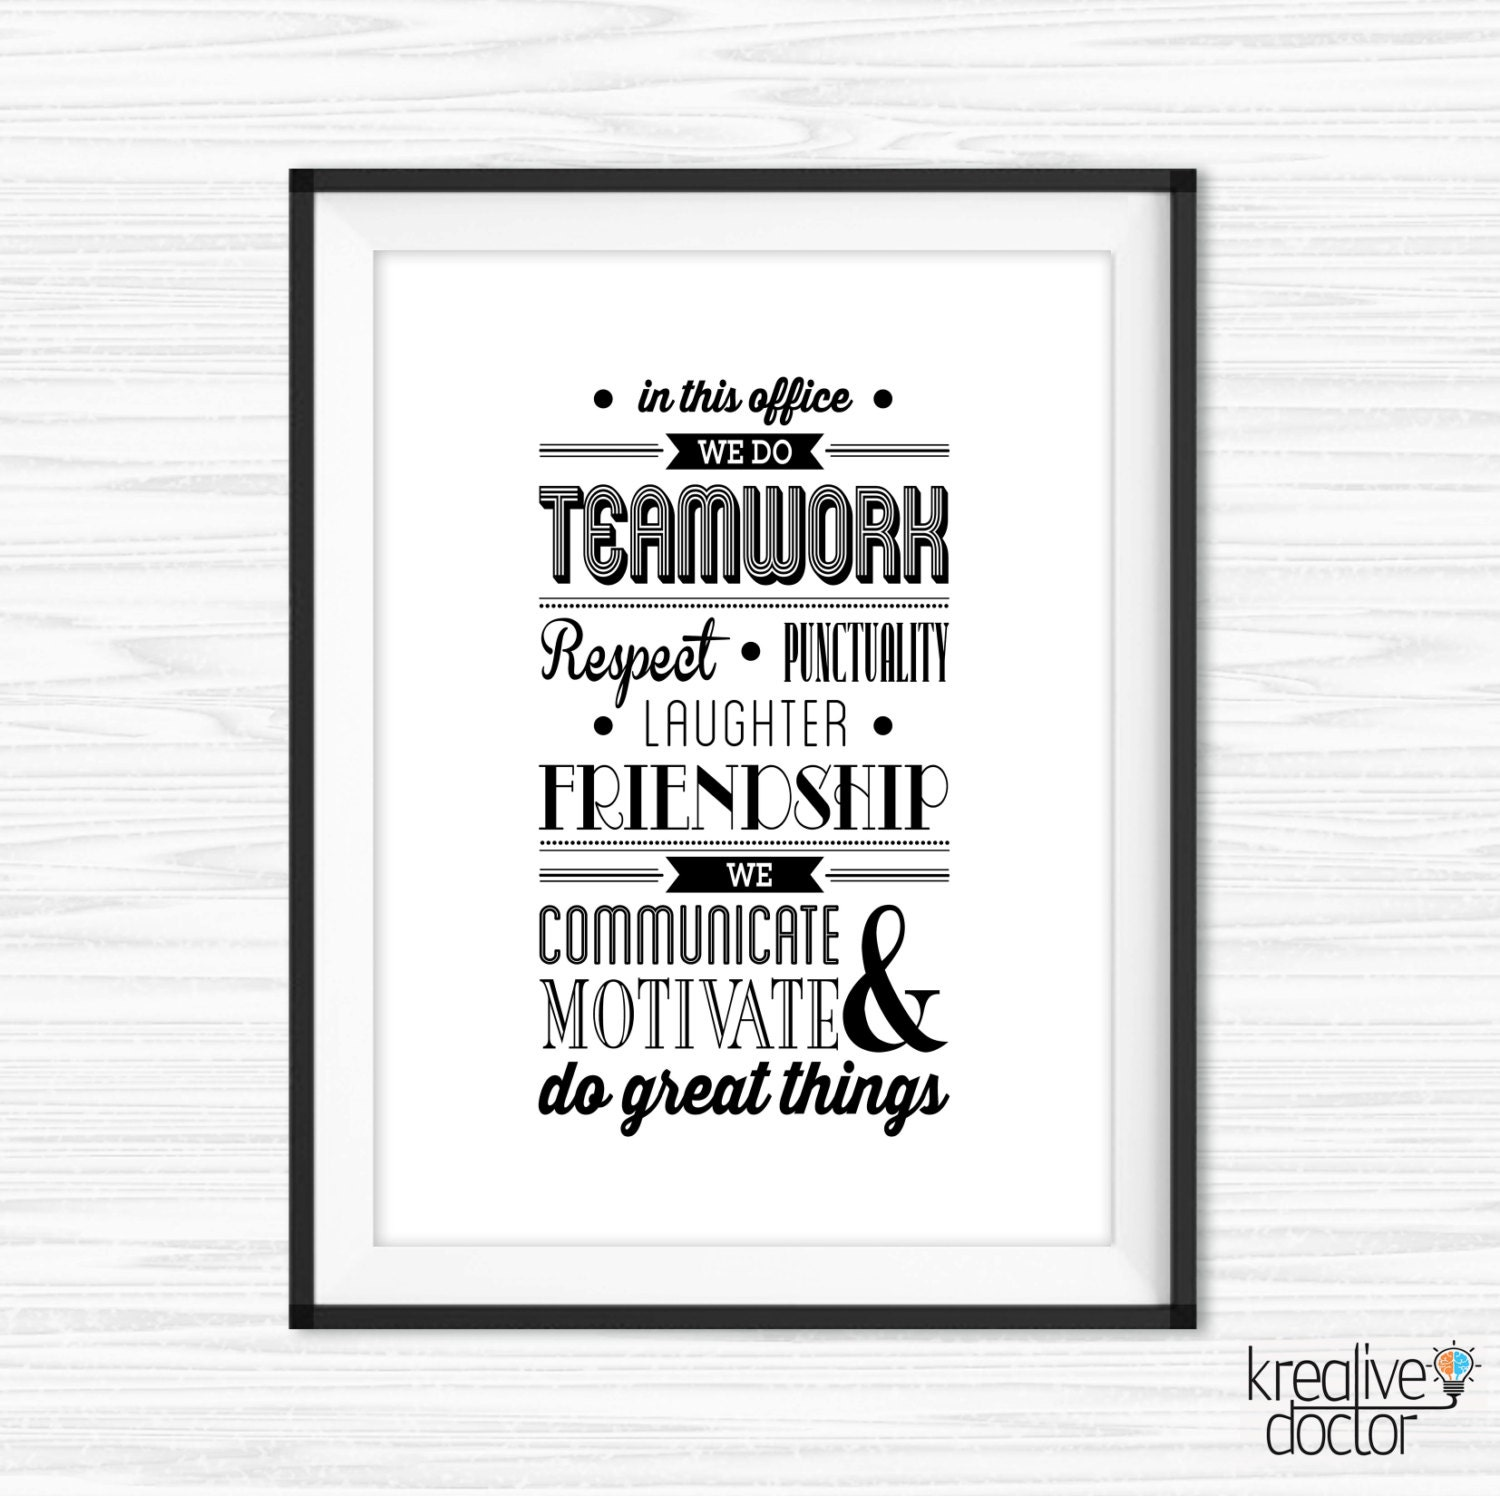 Teamwork Quotes for Office In this Office Quote Inspirational